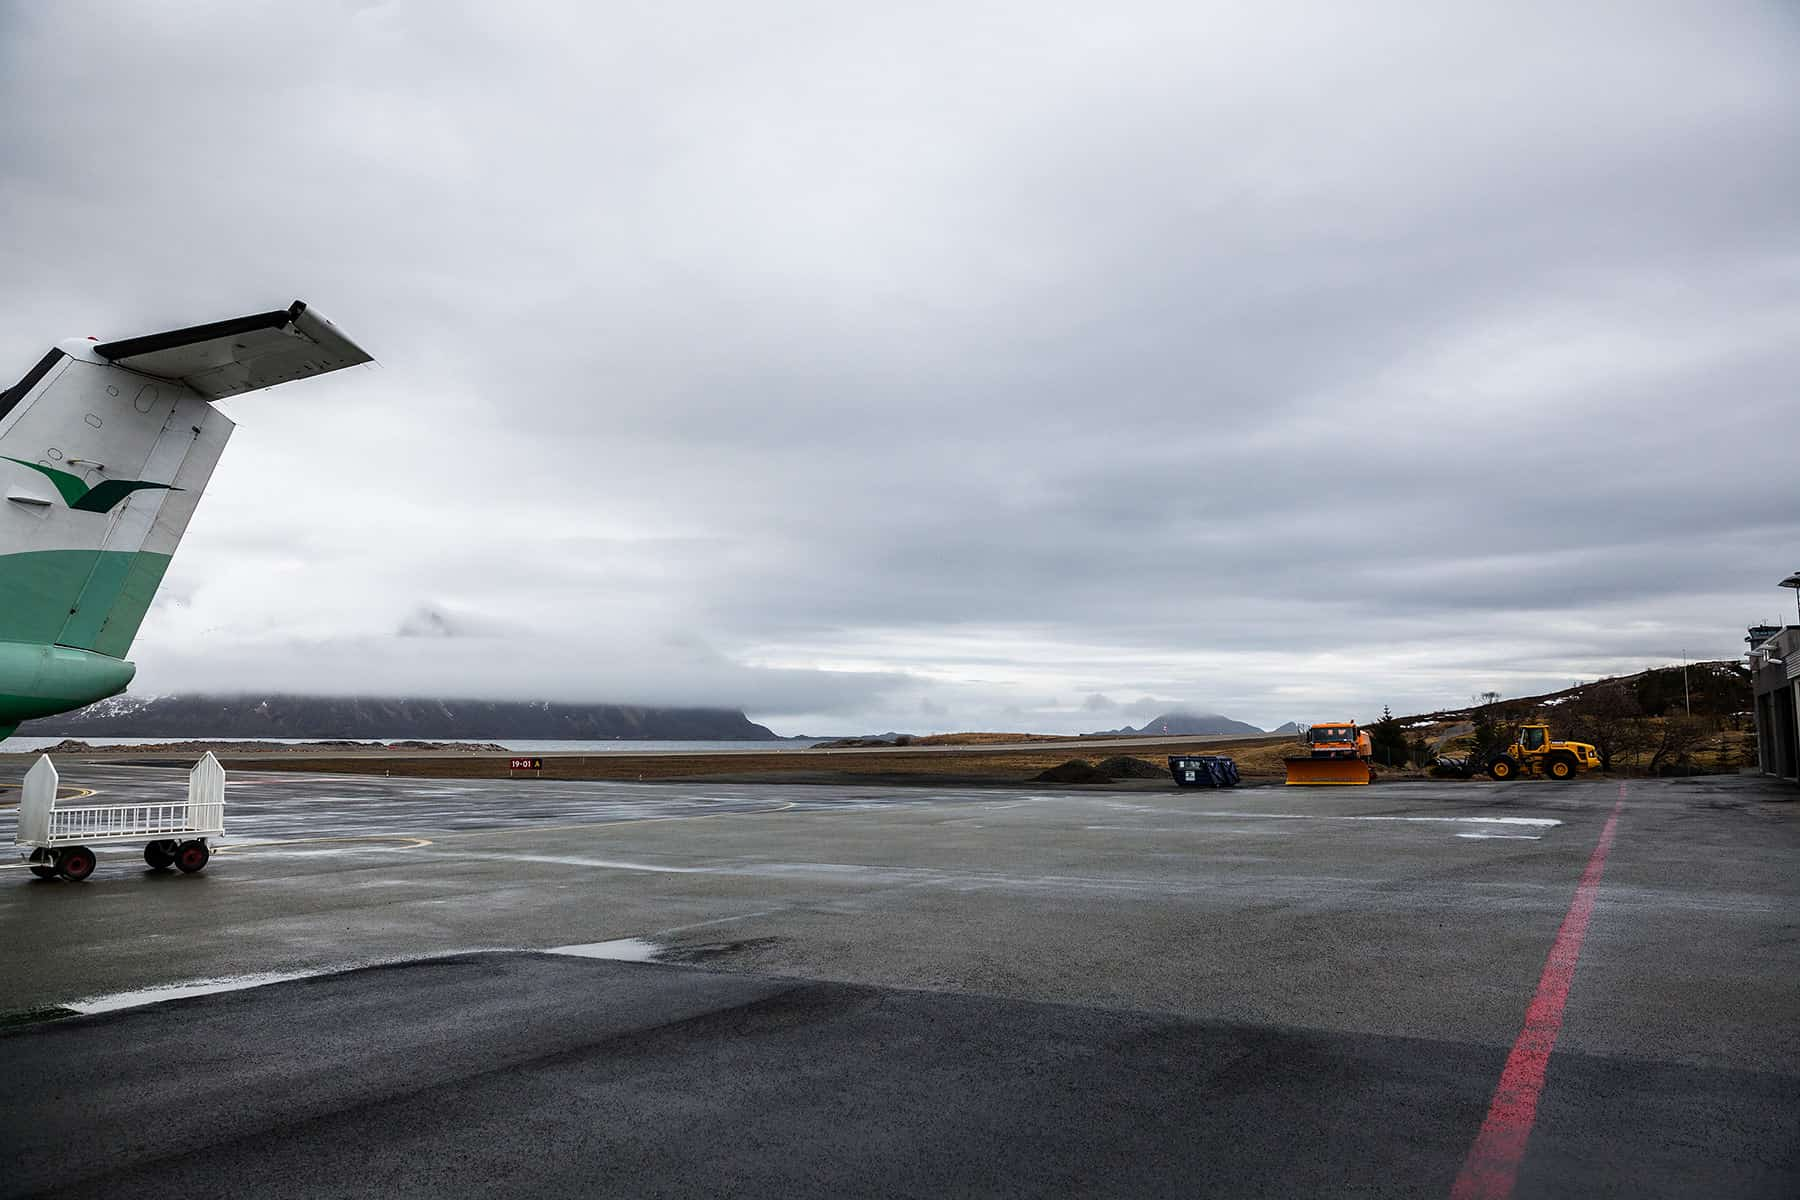 On the runway of the airport Svolvær.